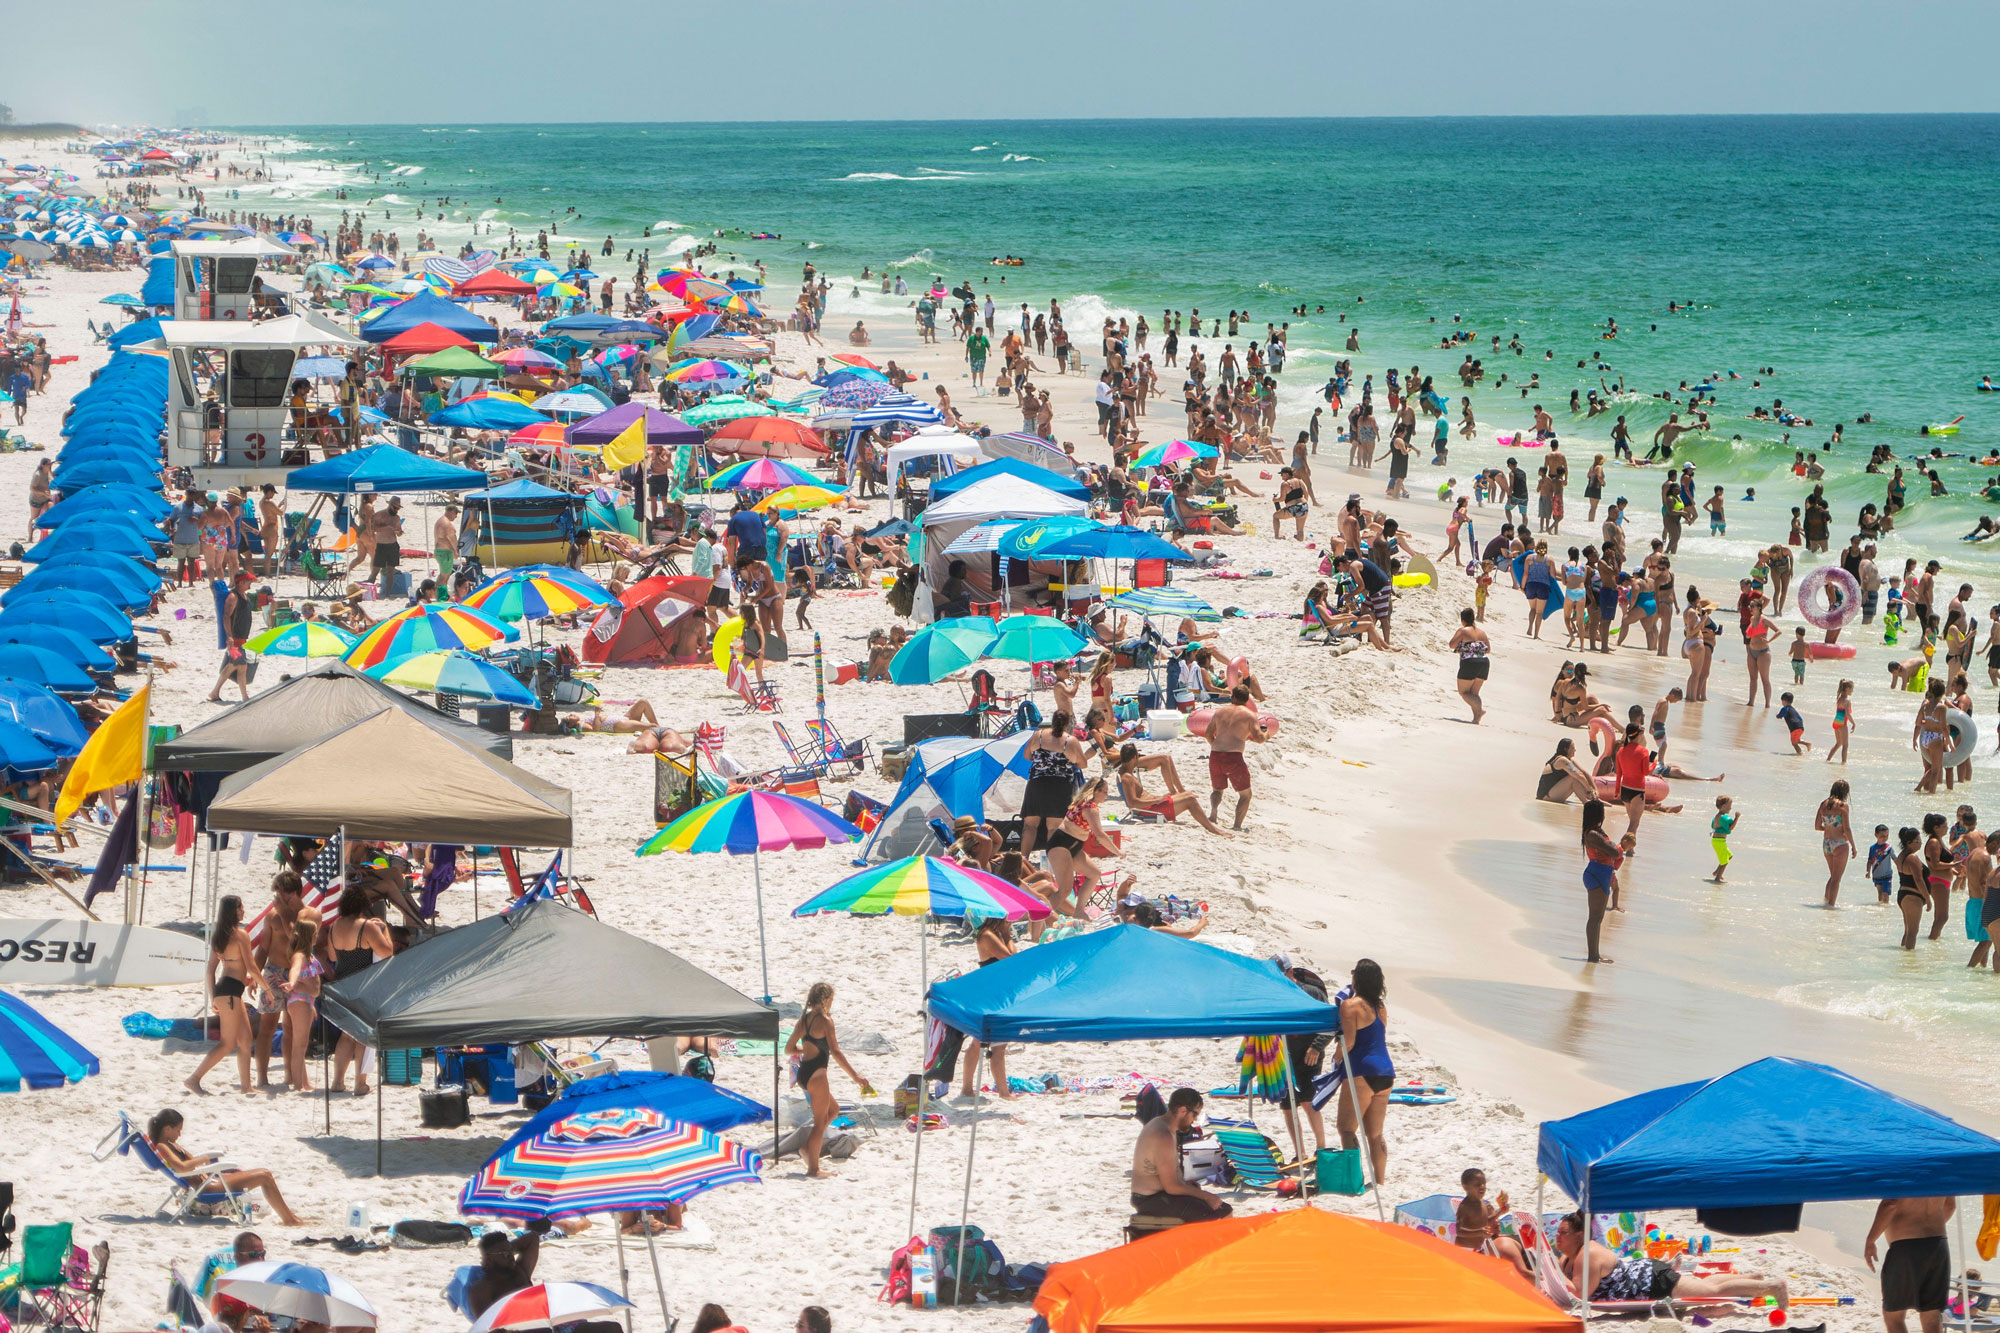 Visitors enjoy their Memorial Day weekend at Pensacola Beach on Saturday, May 23.